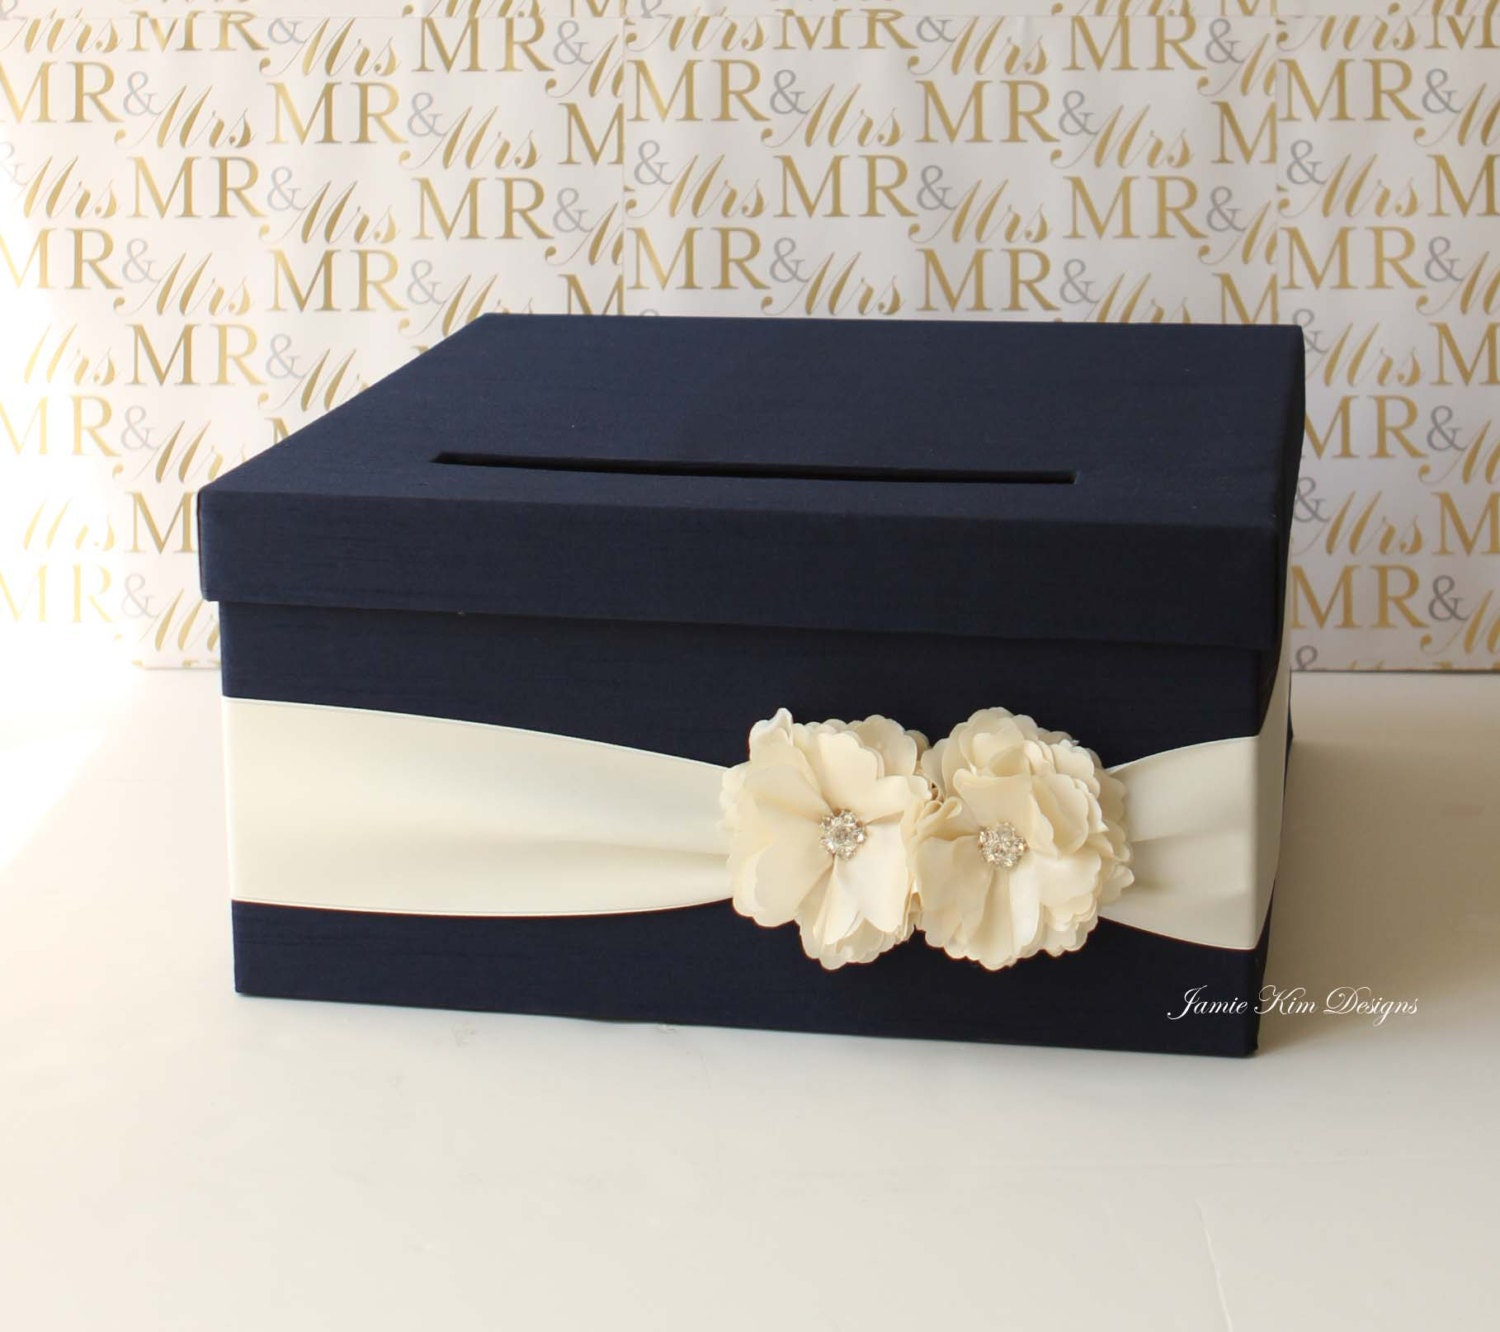 Wedding Gift Box Hire : Wedding Card Box Gift Card Holder Money Box By Jamiekimdesigns